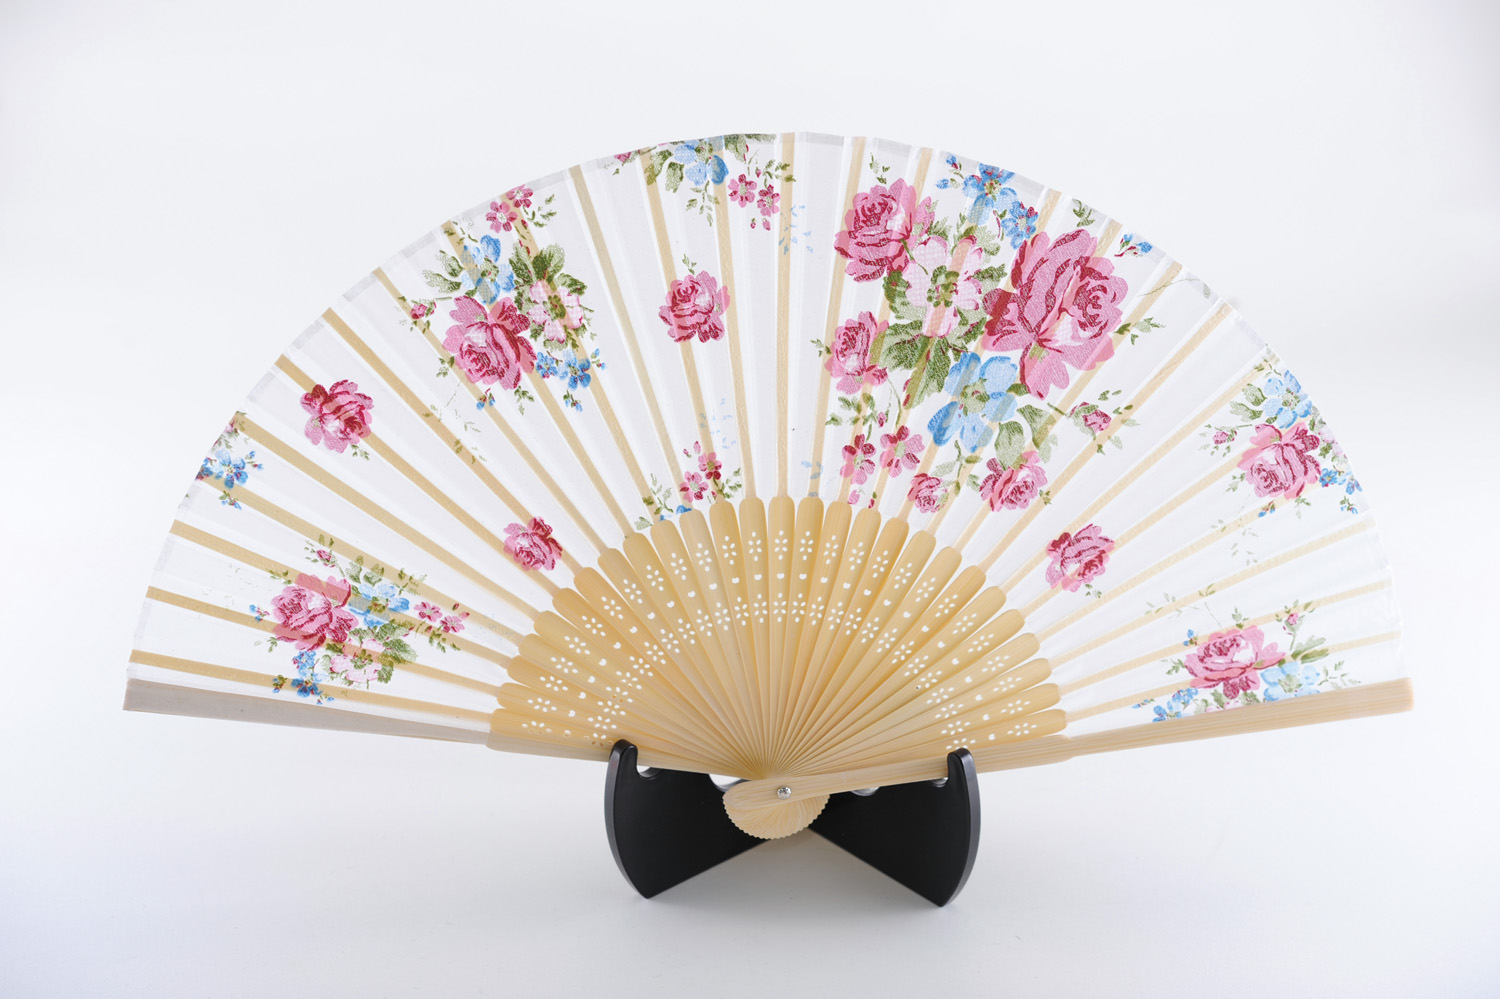 silk fan |Floral pattern, Rose